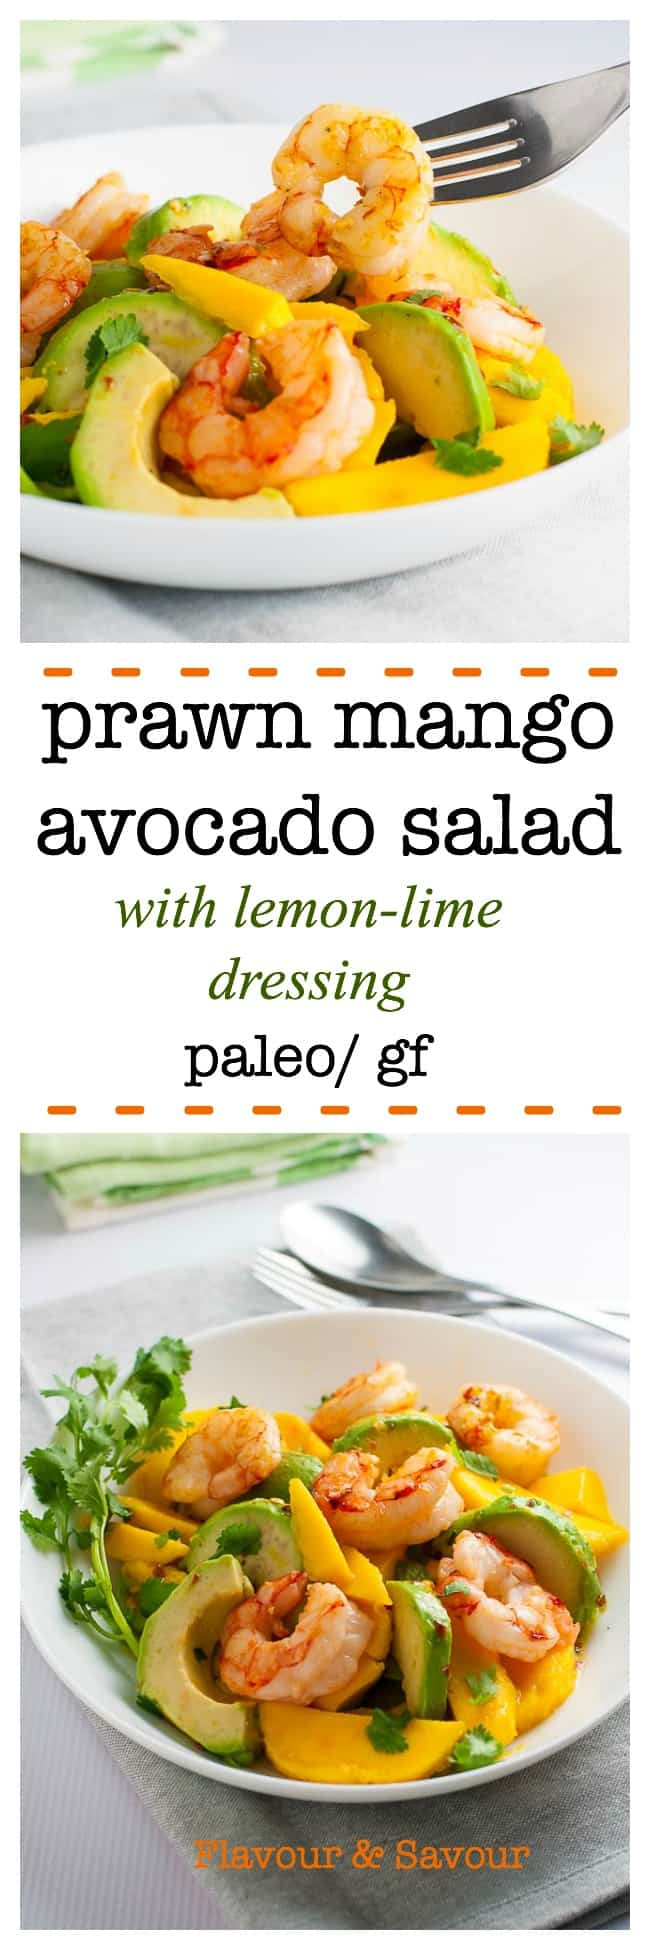 This paleo Prawn Mango Avocado Salad with sizzling shrimp can ready to eat in 15minutes. Sweet, juicy mangos, creamy avocado and tender shrimp all tossed with a lemon-lime dressing make a simple but simply delectable salad. #prawns #shrimp #mango #avocado #salad #paleo #glutenfree